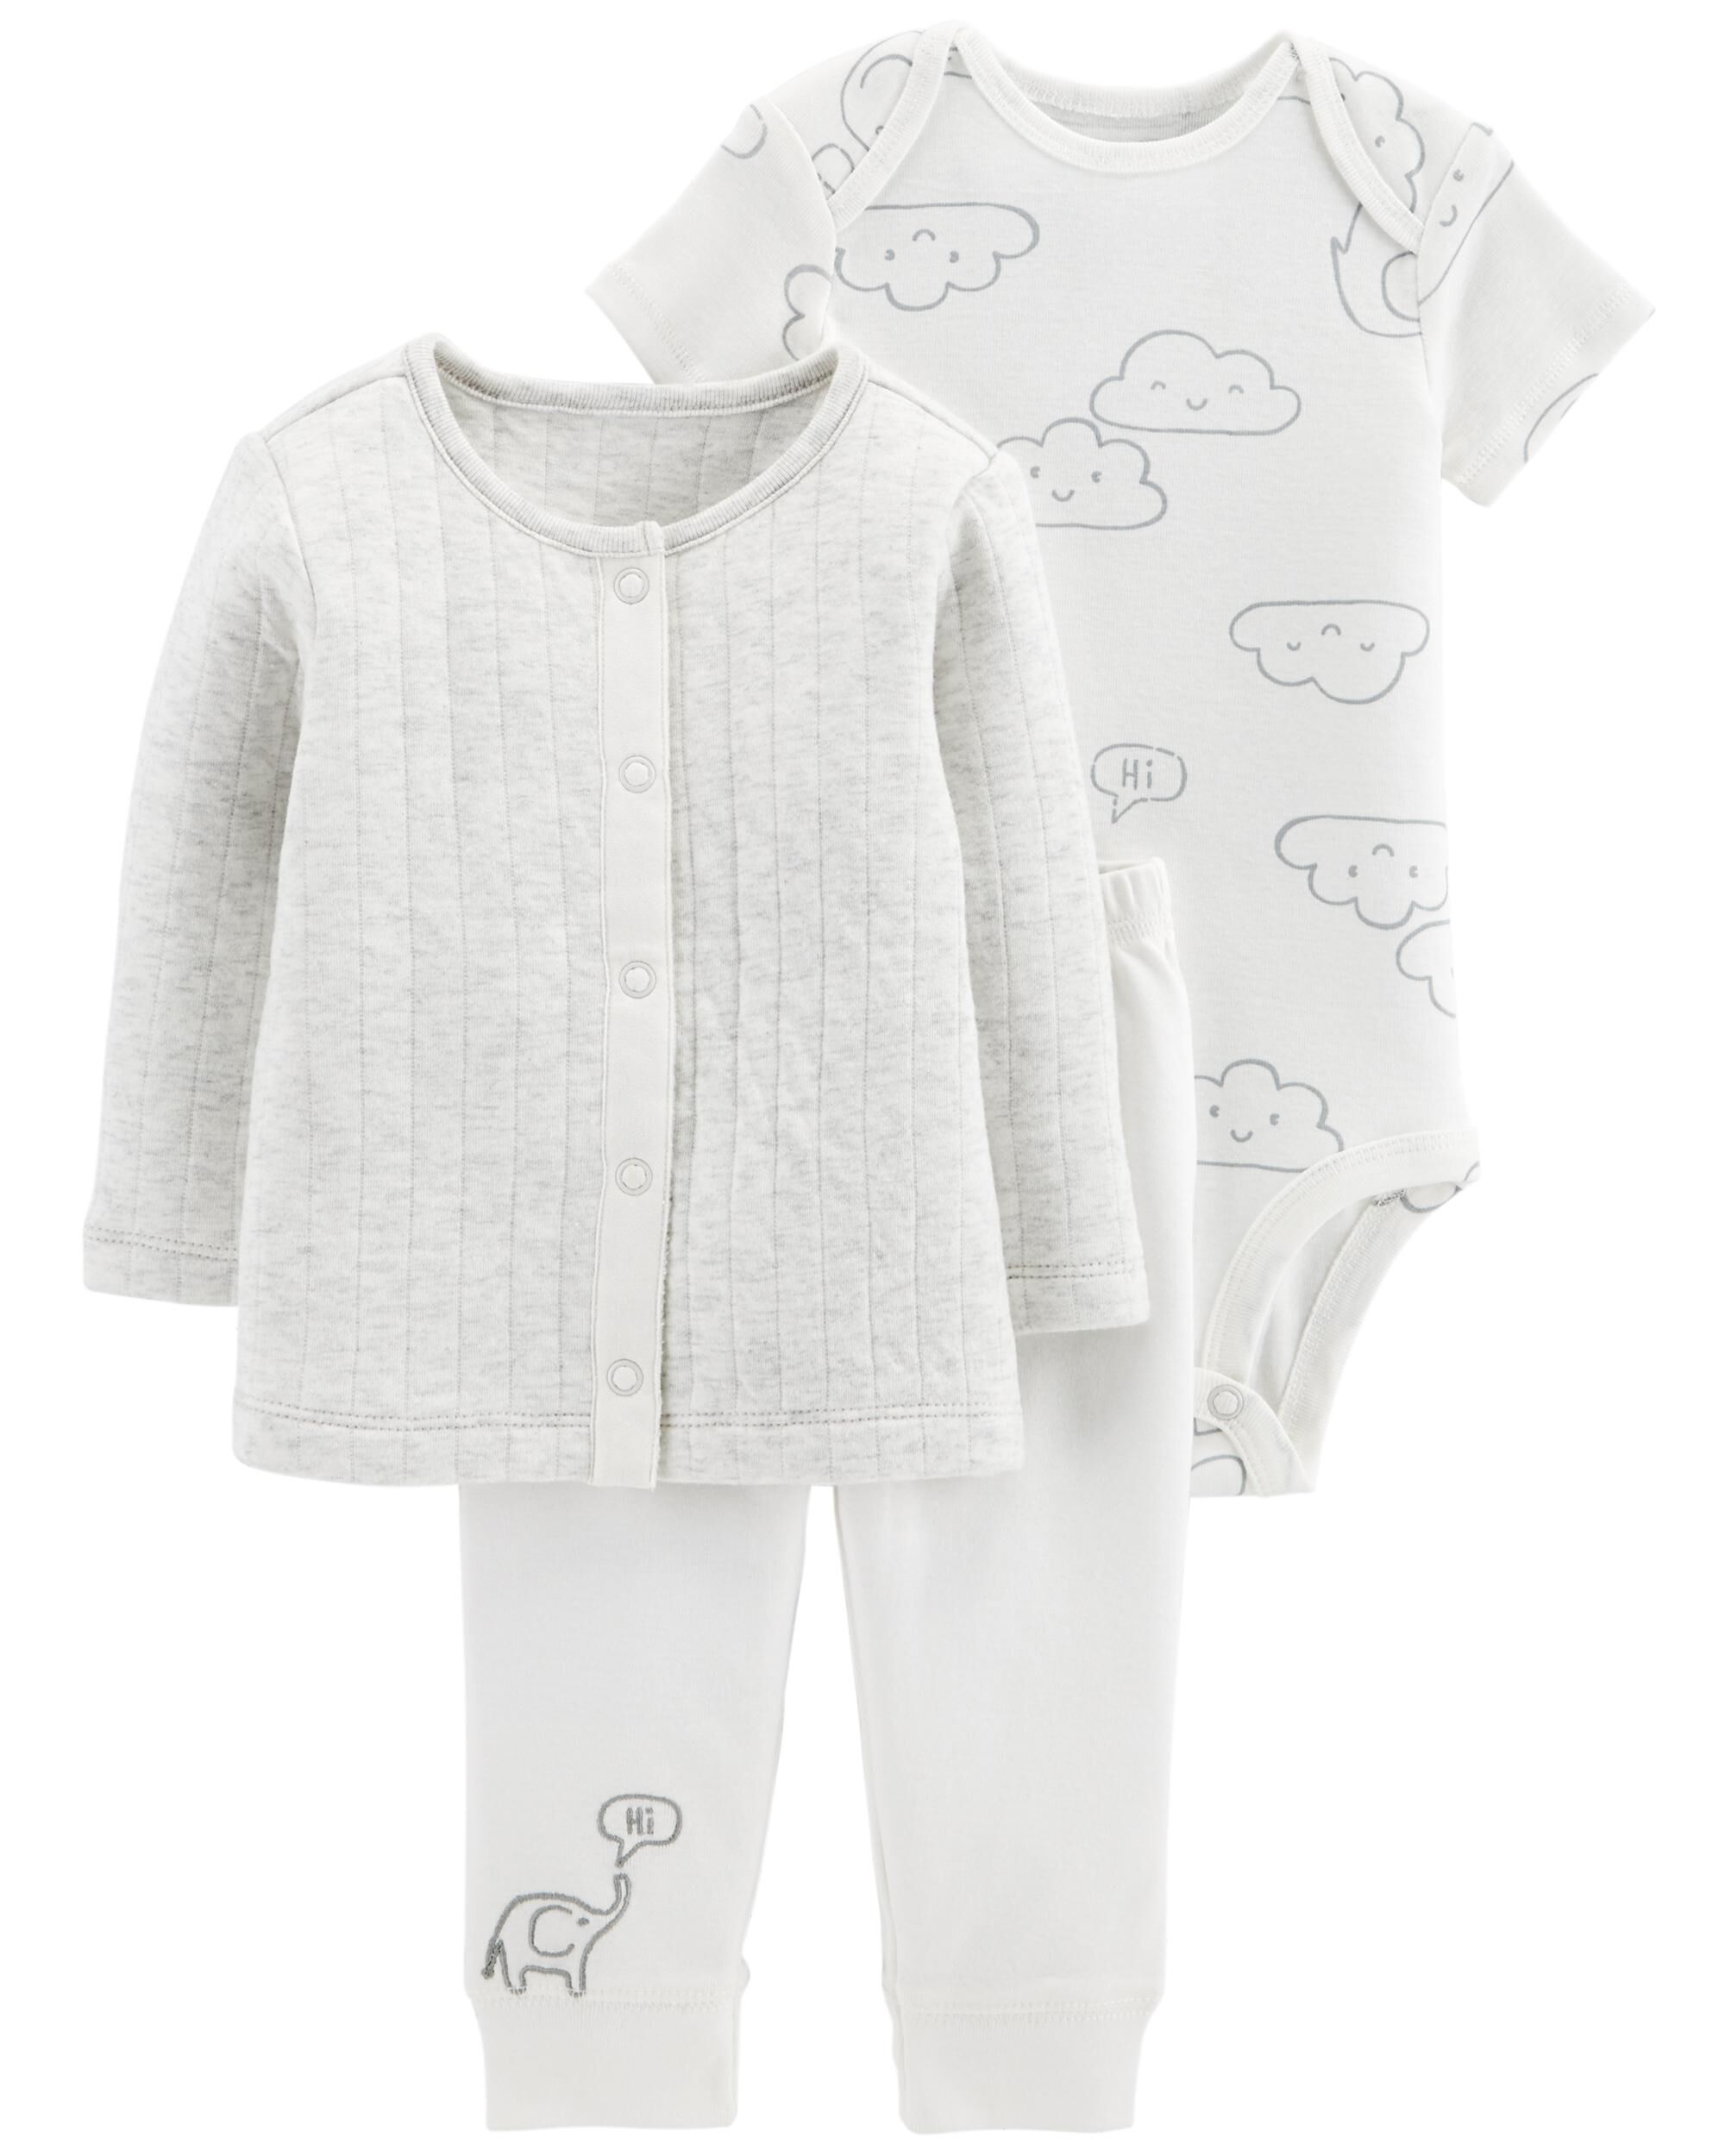 14 BLUES BABY white baby suit with quilted jacket 3 piece New Newborn to 3 m